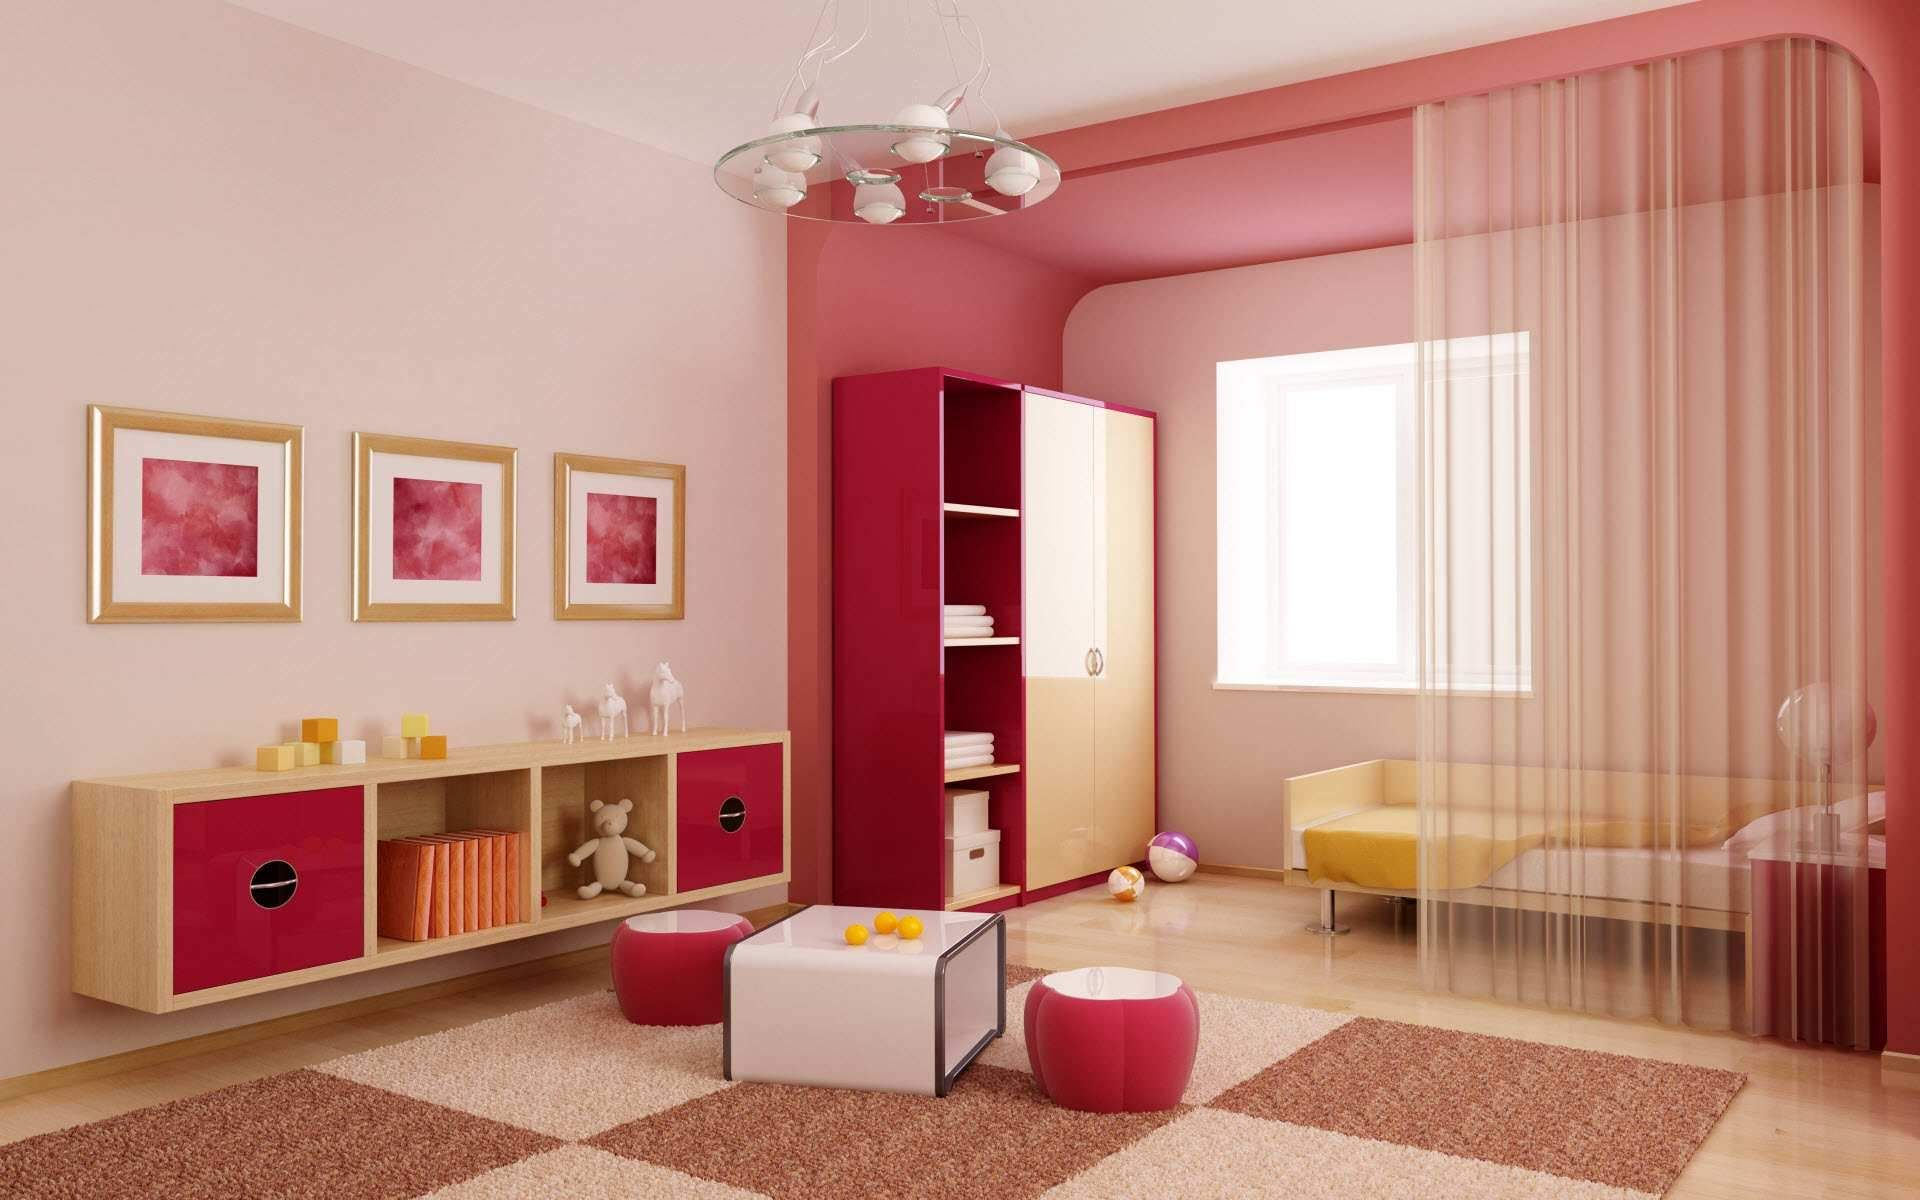 cool Stylish Home Designs For Kid\'s Bedroom 27 - Stylendesigns.com ...